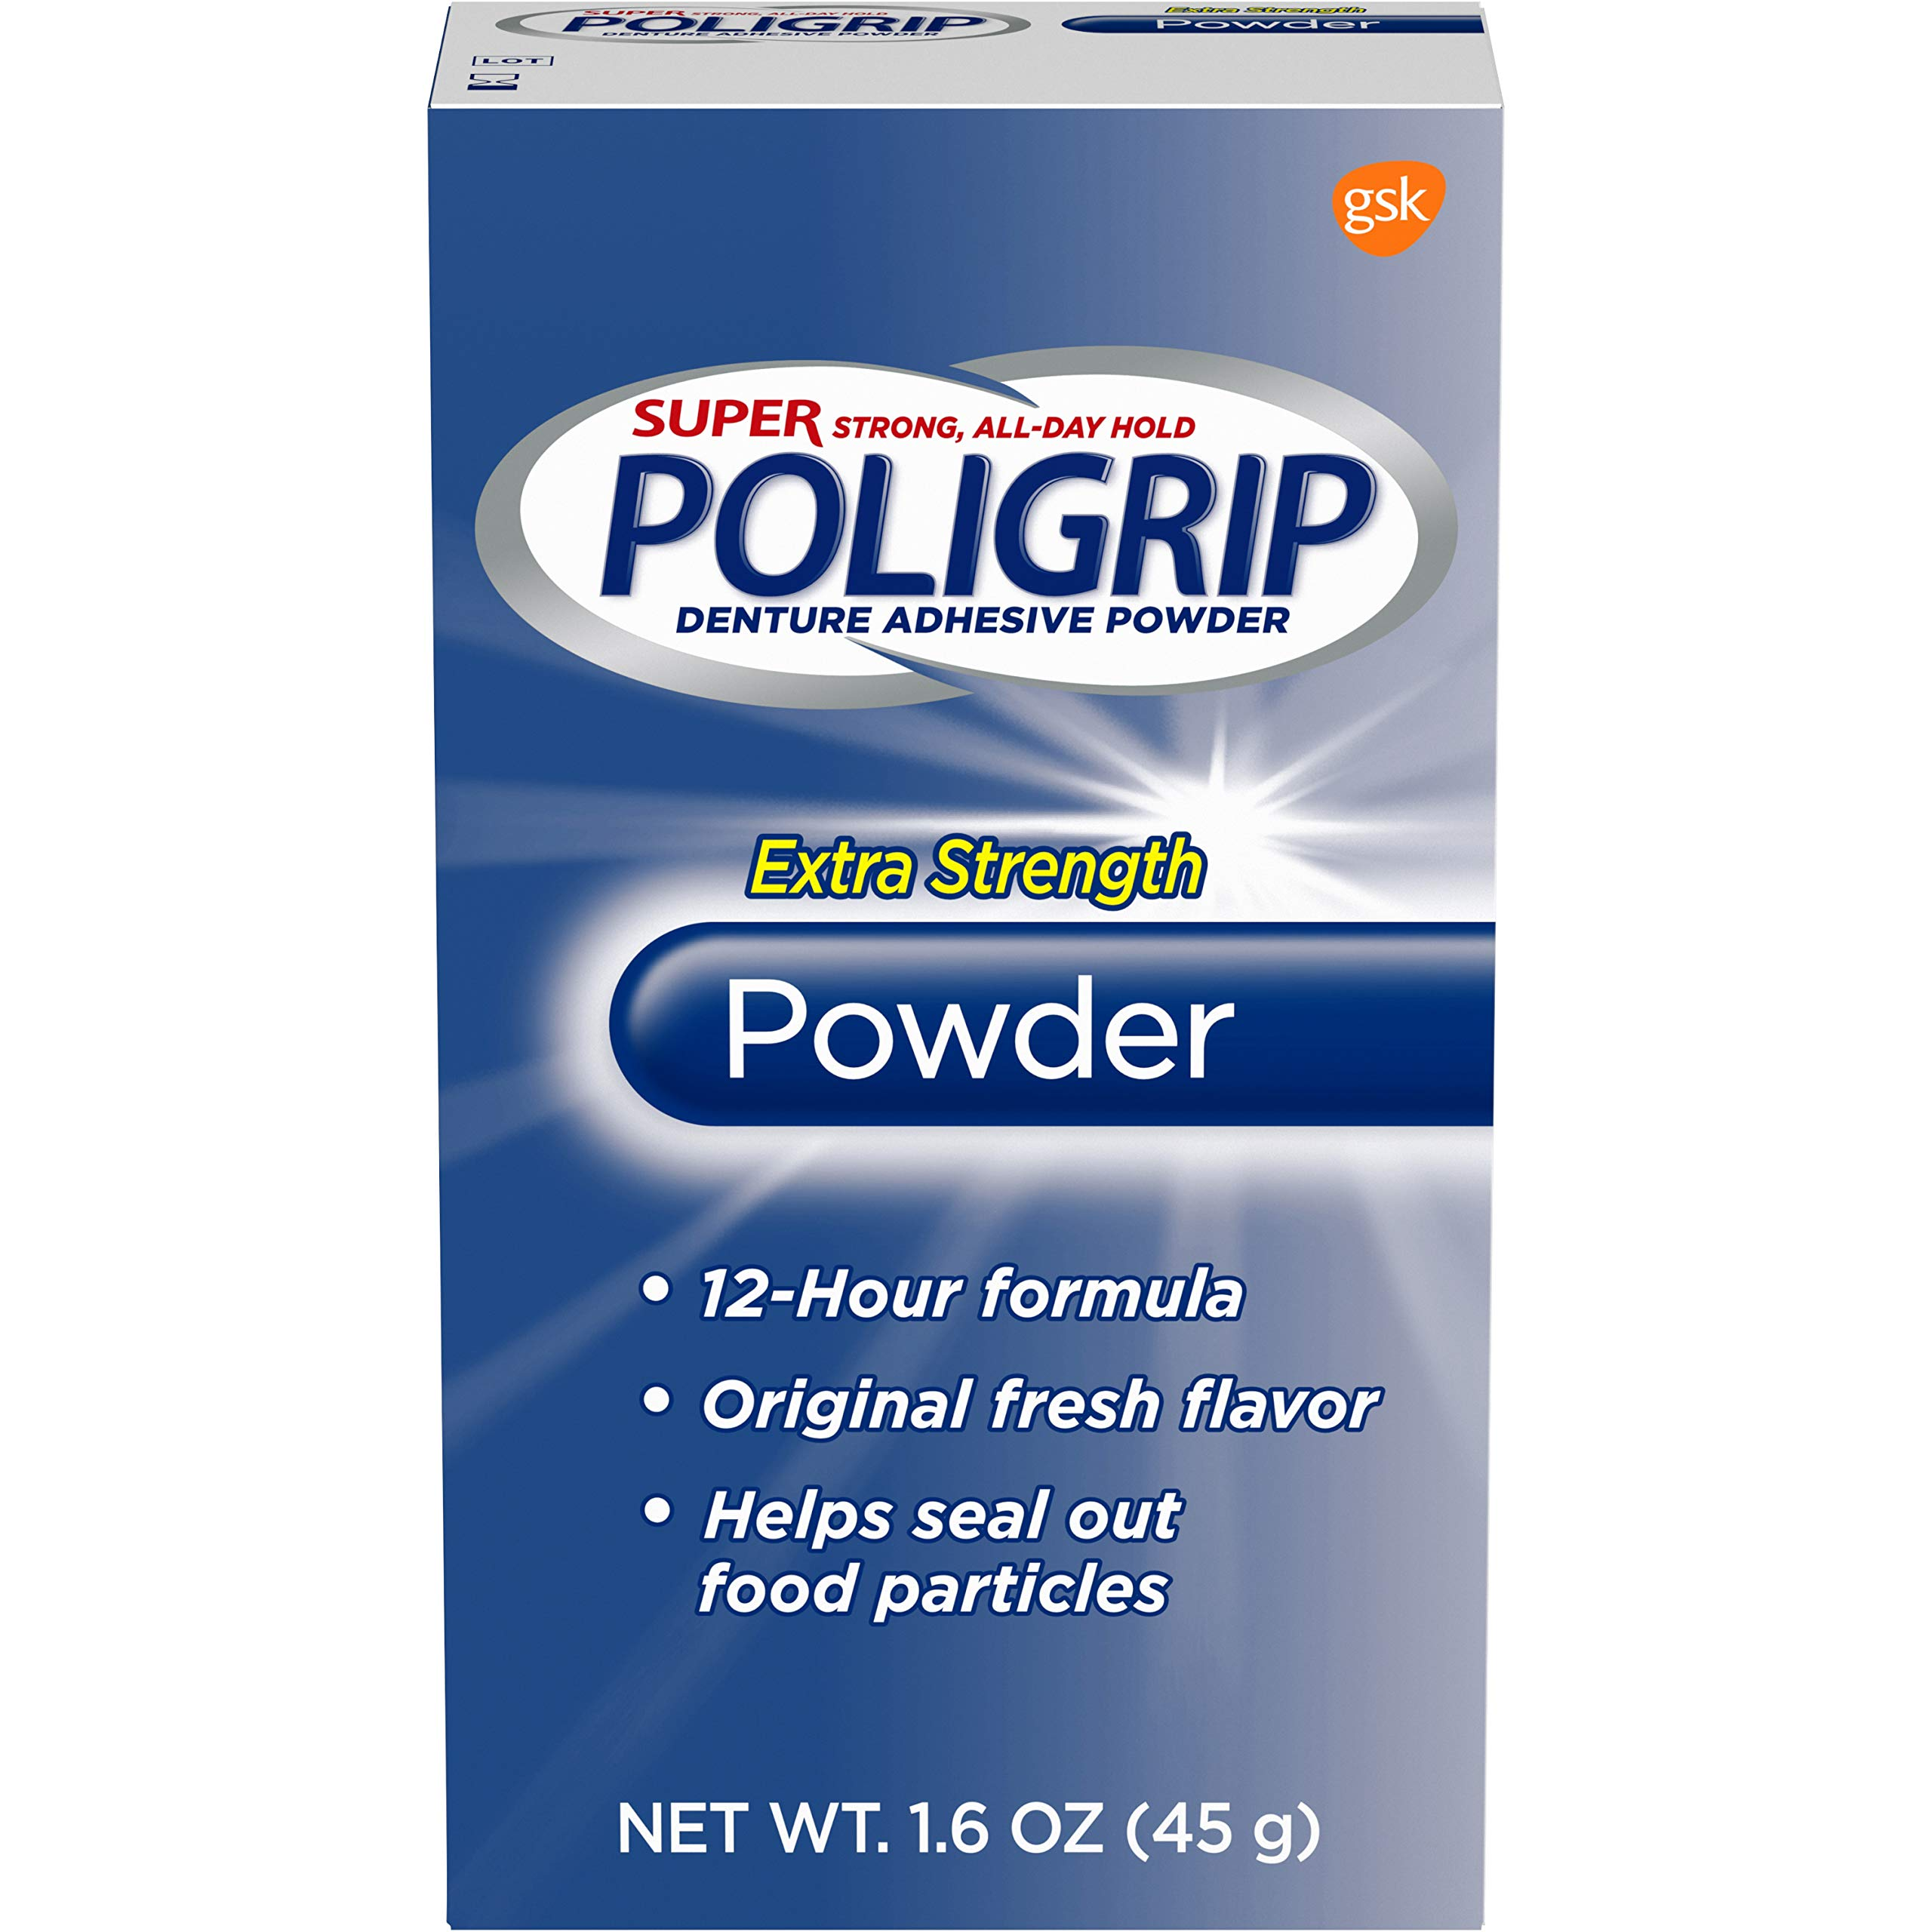 Super Poligrip Extra Strength Denture Adhesive Powder, 1.6 ounce (Pack of 6) (Packaging may vary)